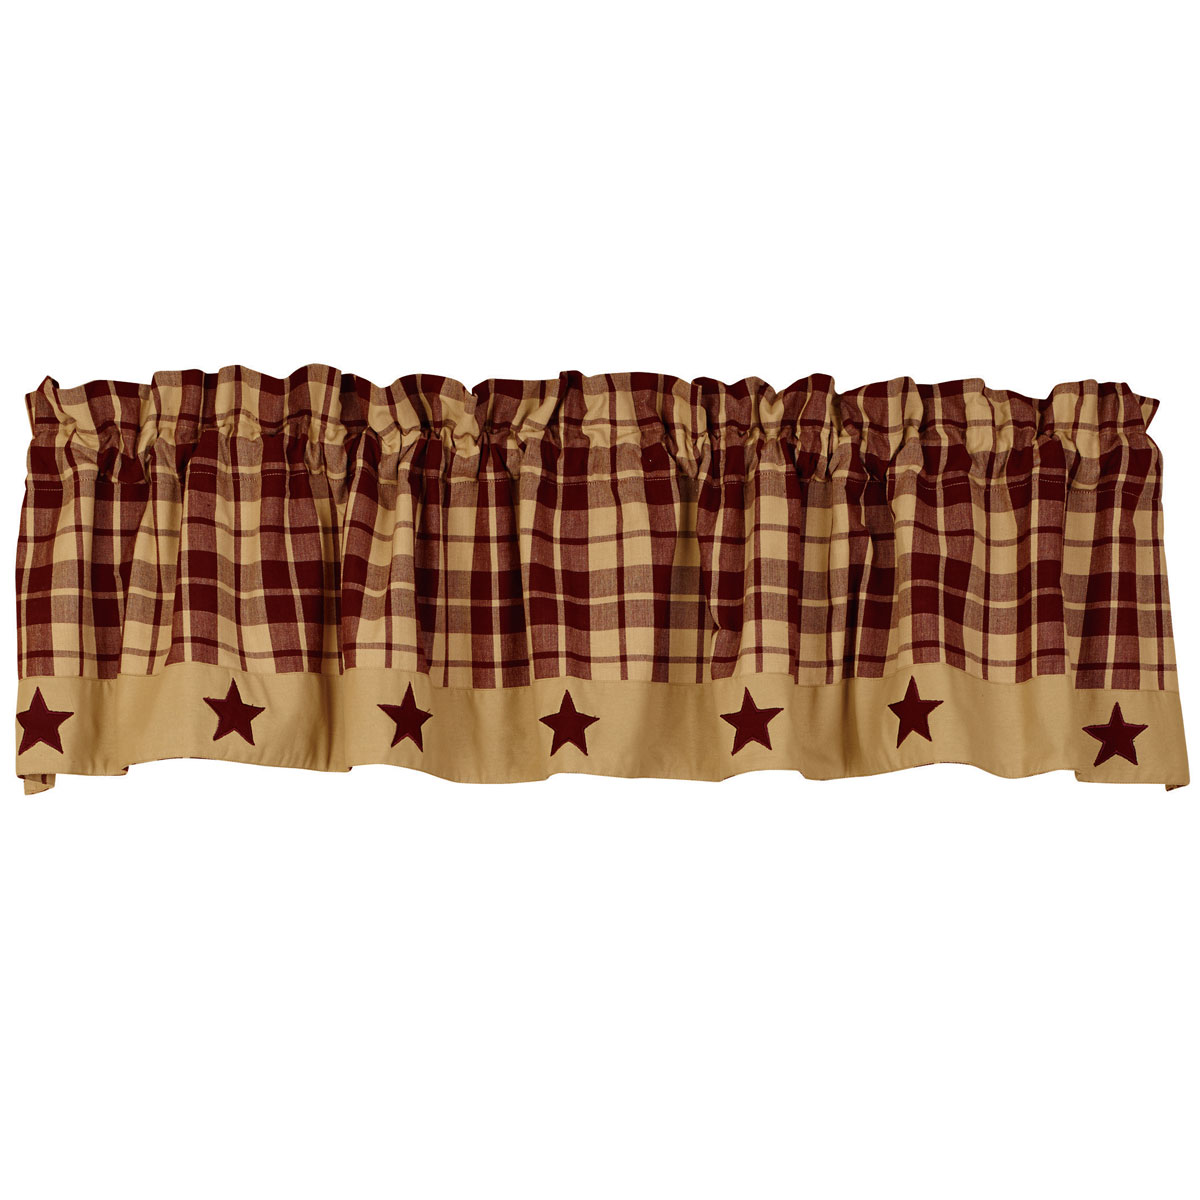 Primitive Farmhouse Star Appliqued Lined Valance Black